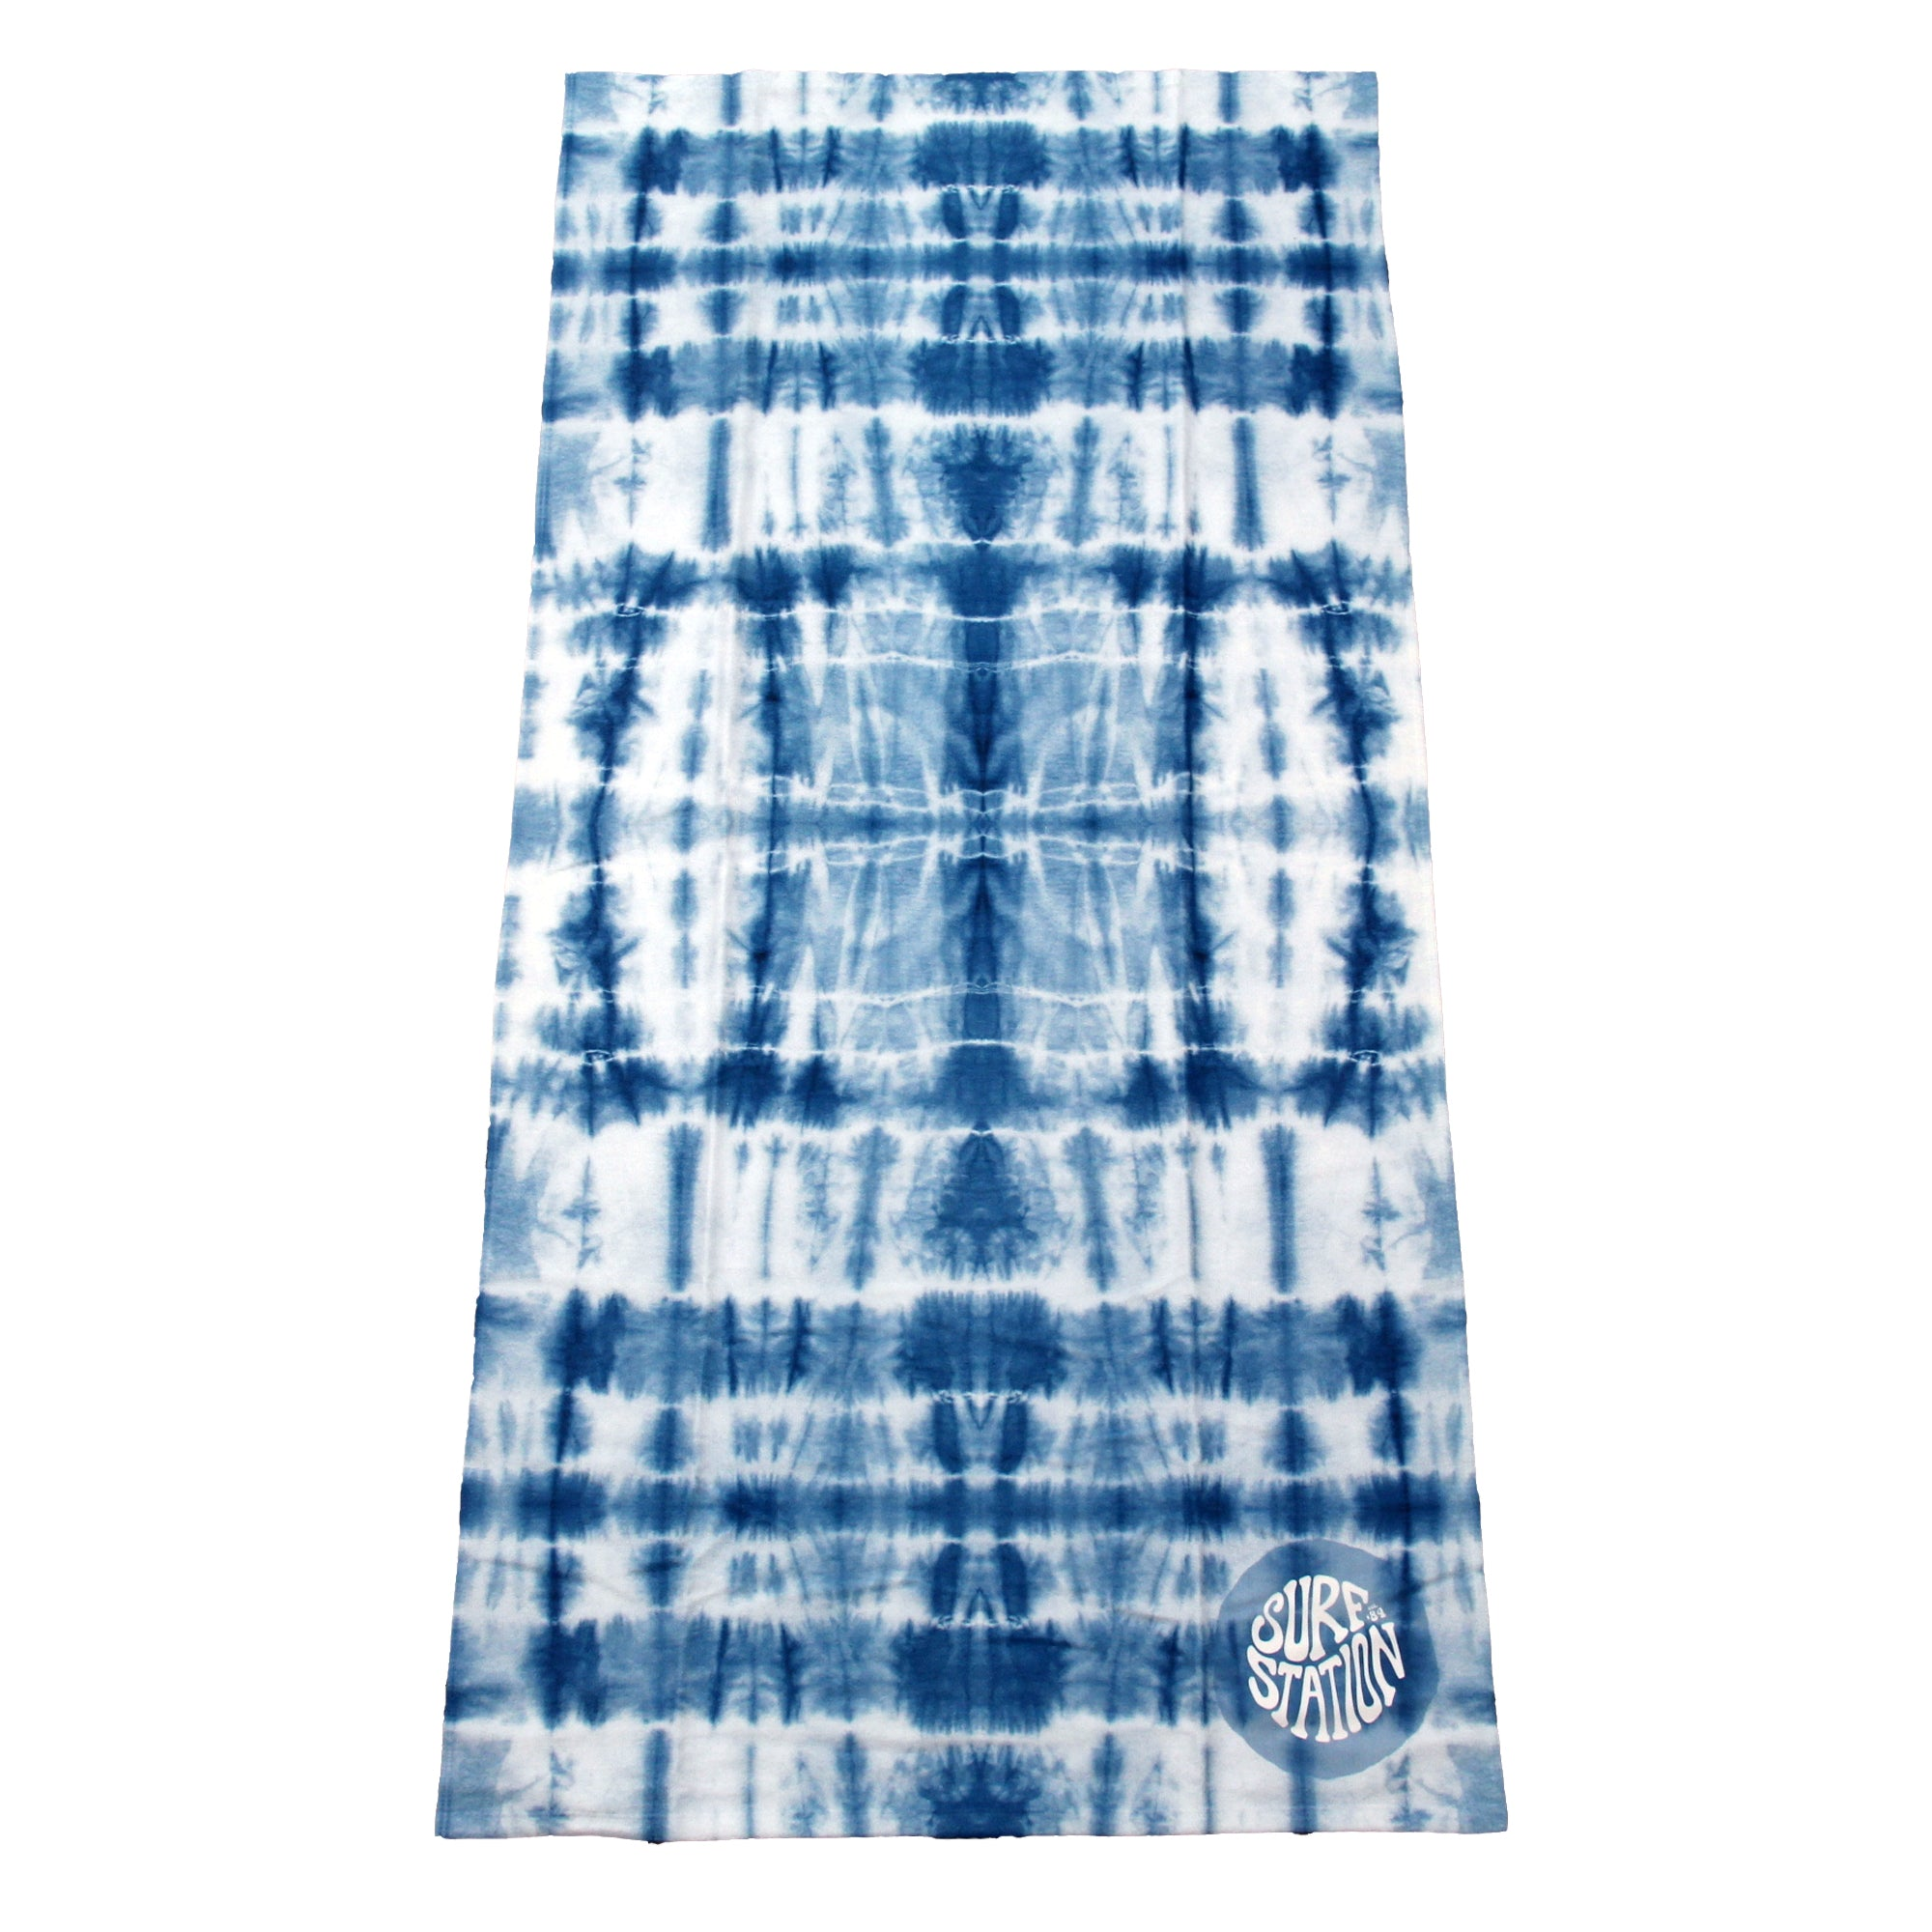 Surf Station Beach Towel - Doppler